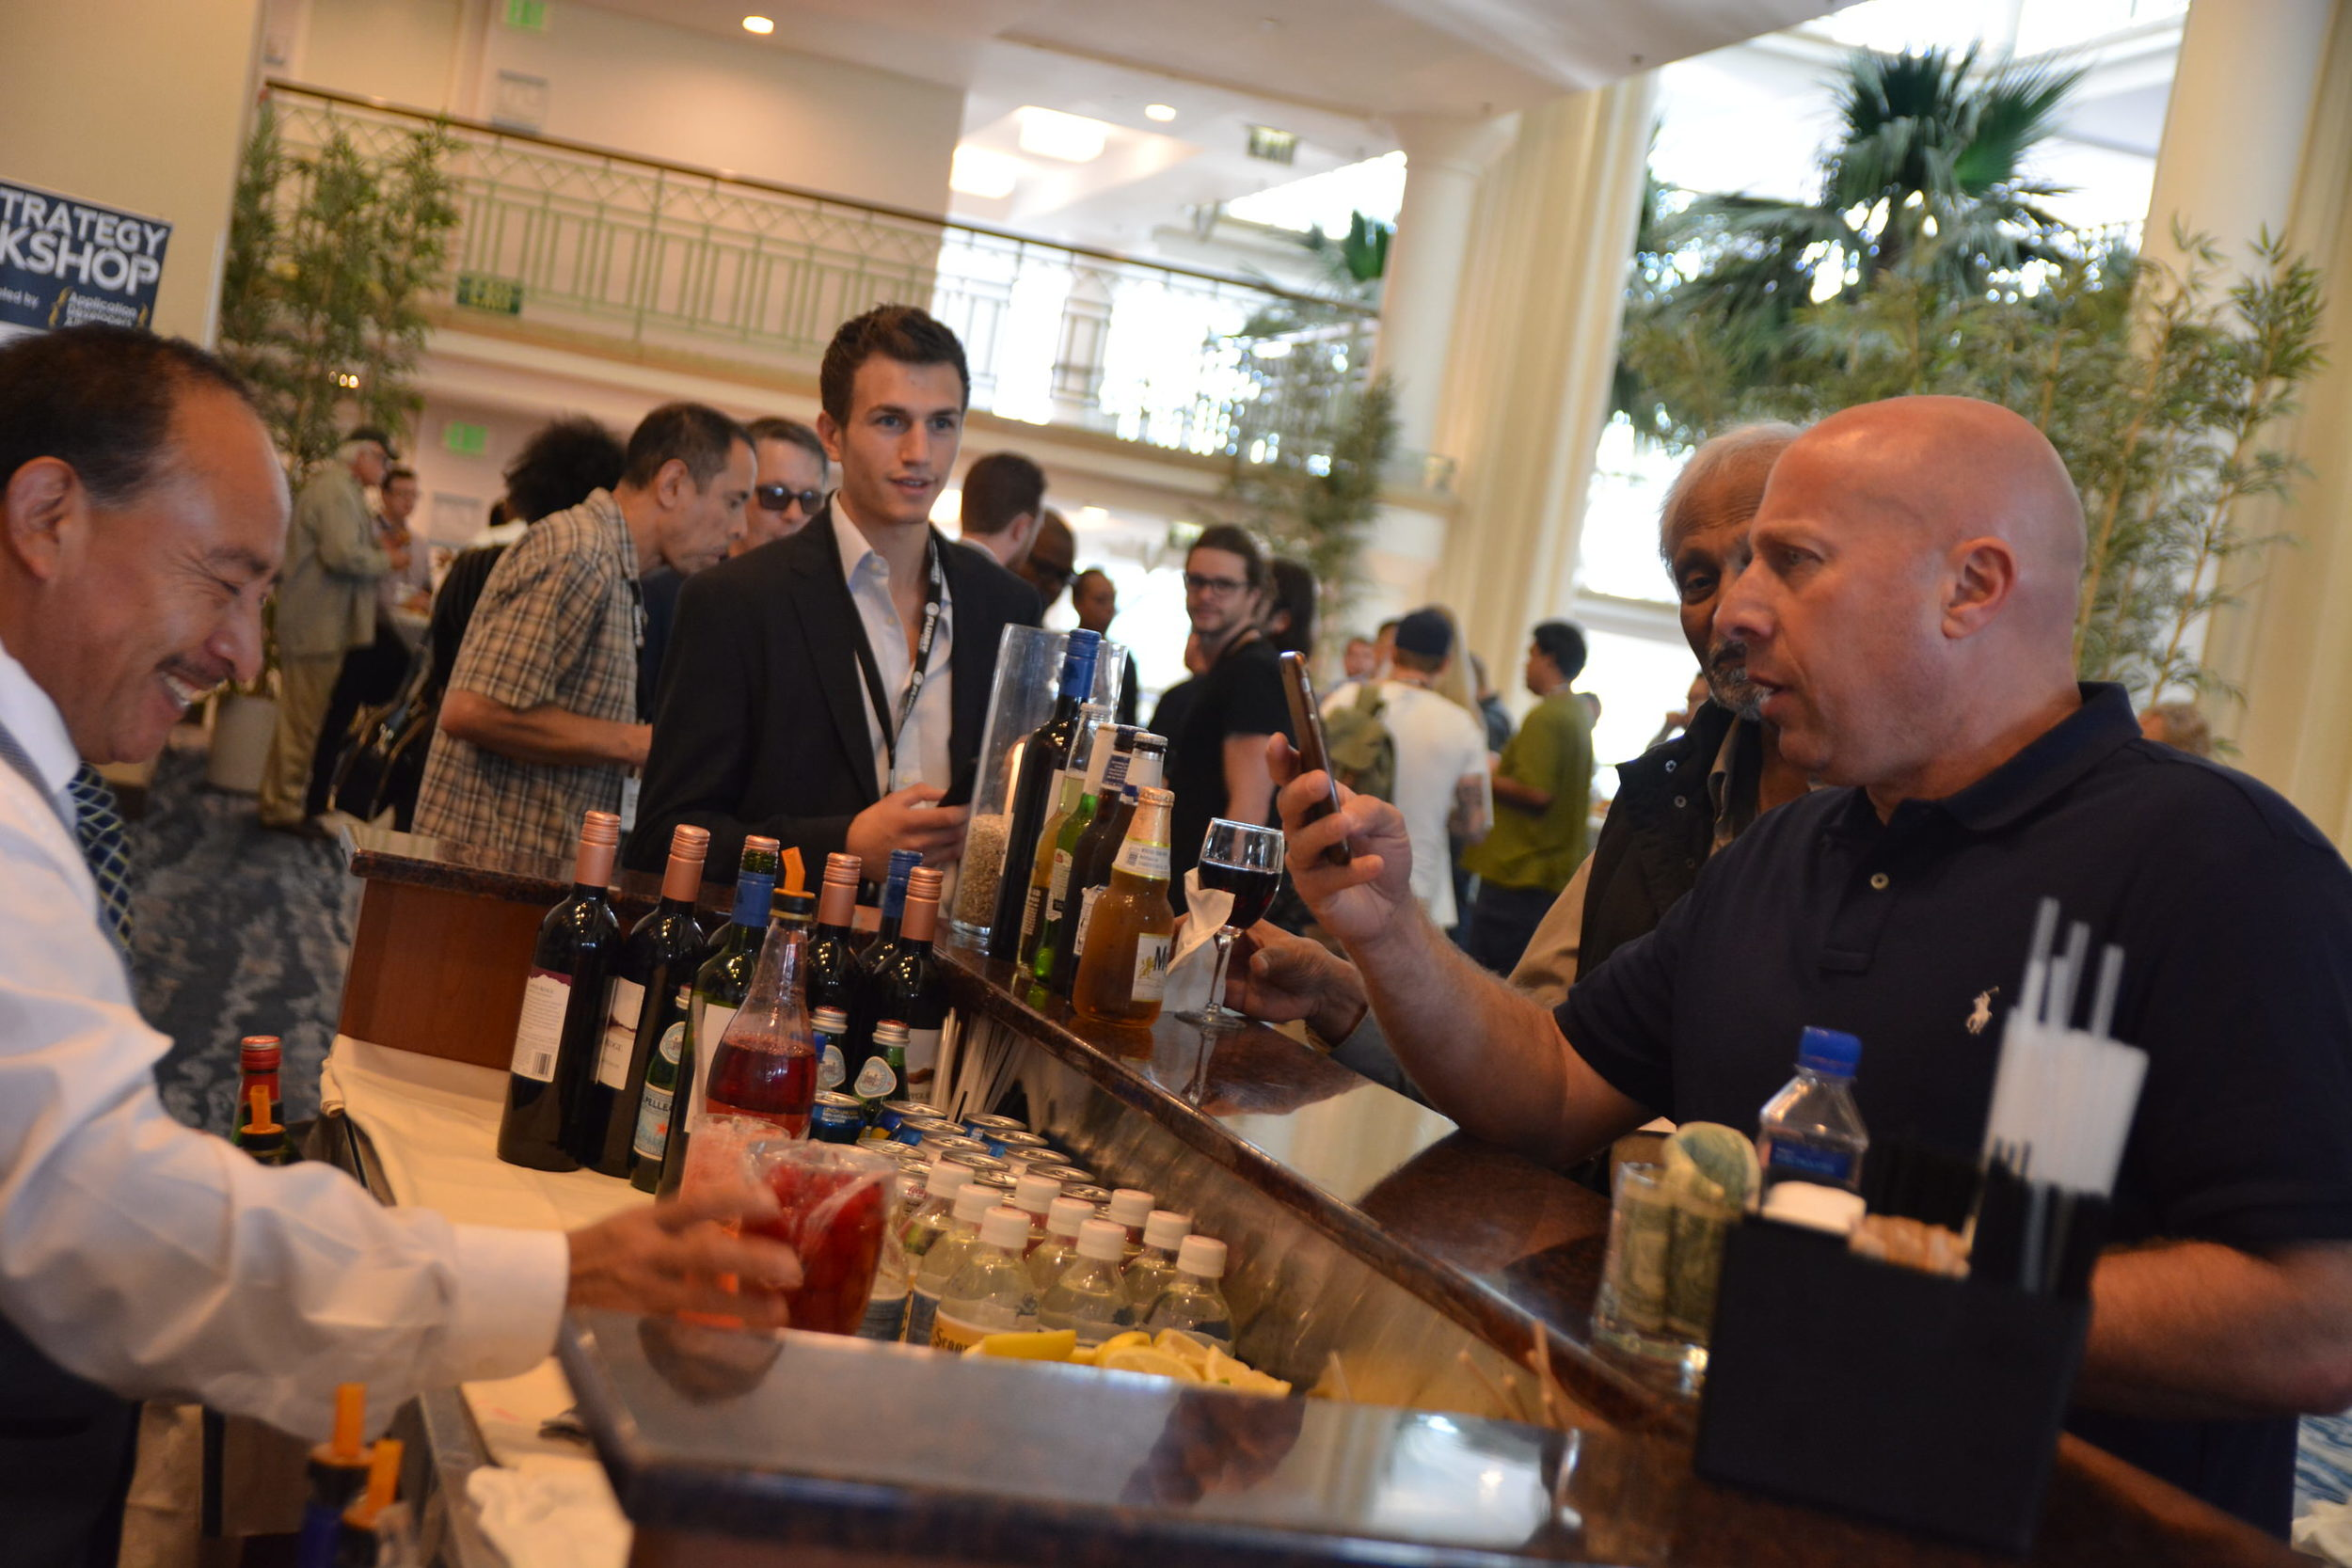 The open-bar was definitely a popular component of our happy hour!